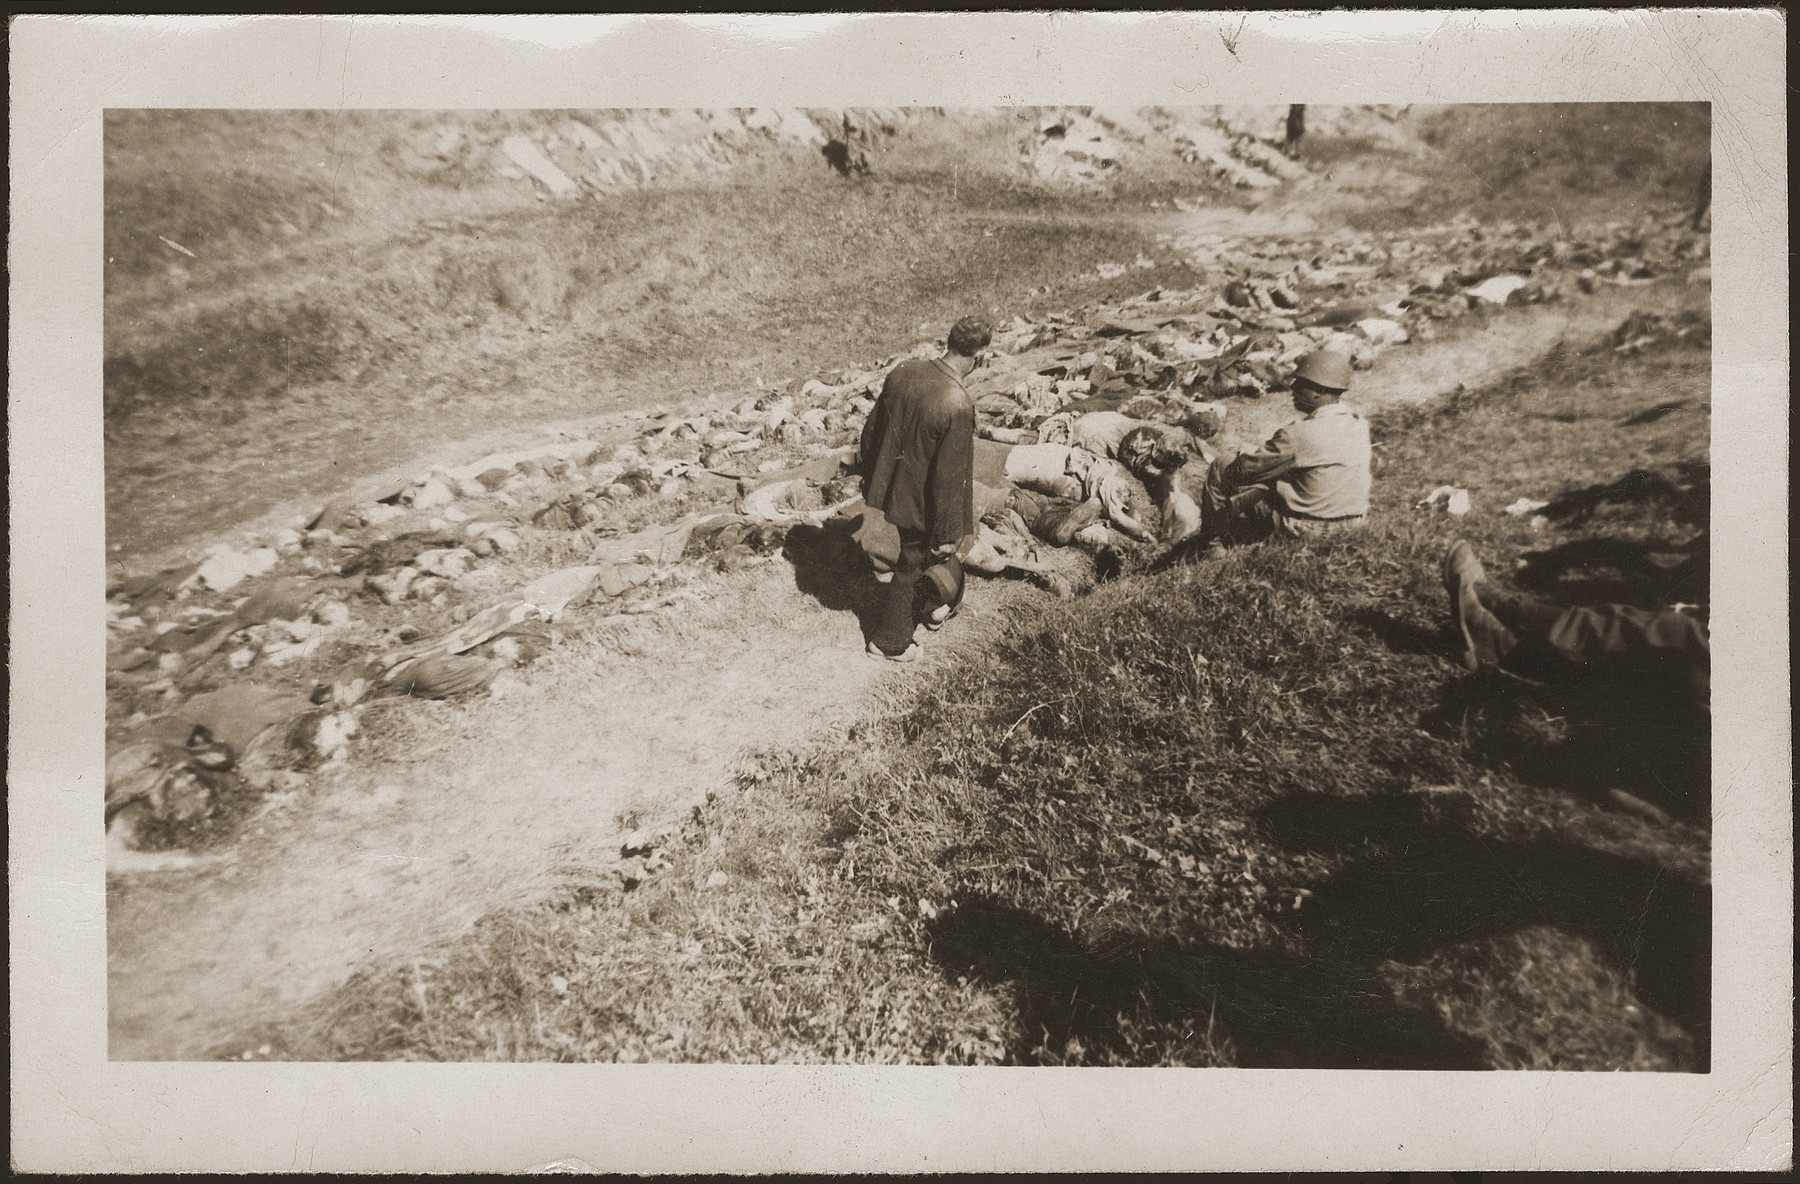 A German civilian from Nammering looks at the corpses of prisoners exhumed from a mass grave near the town.